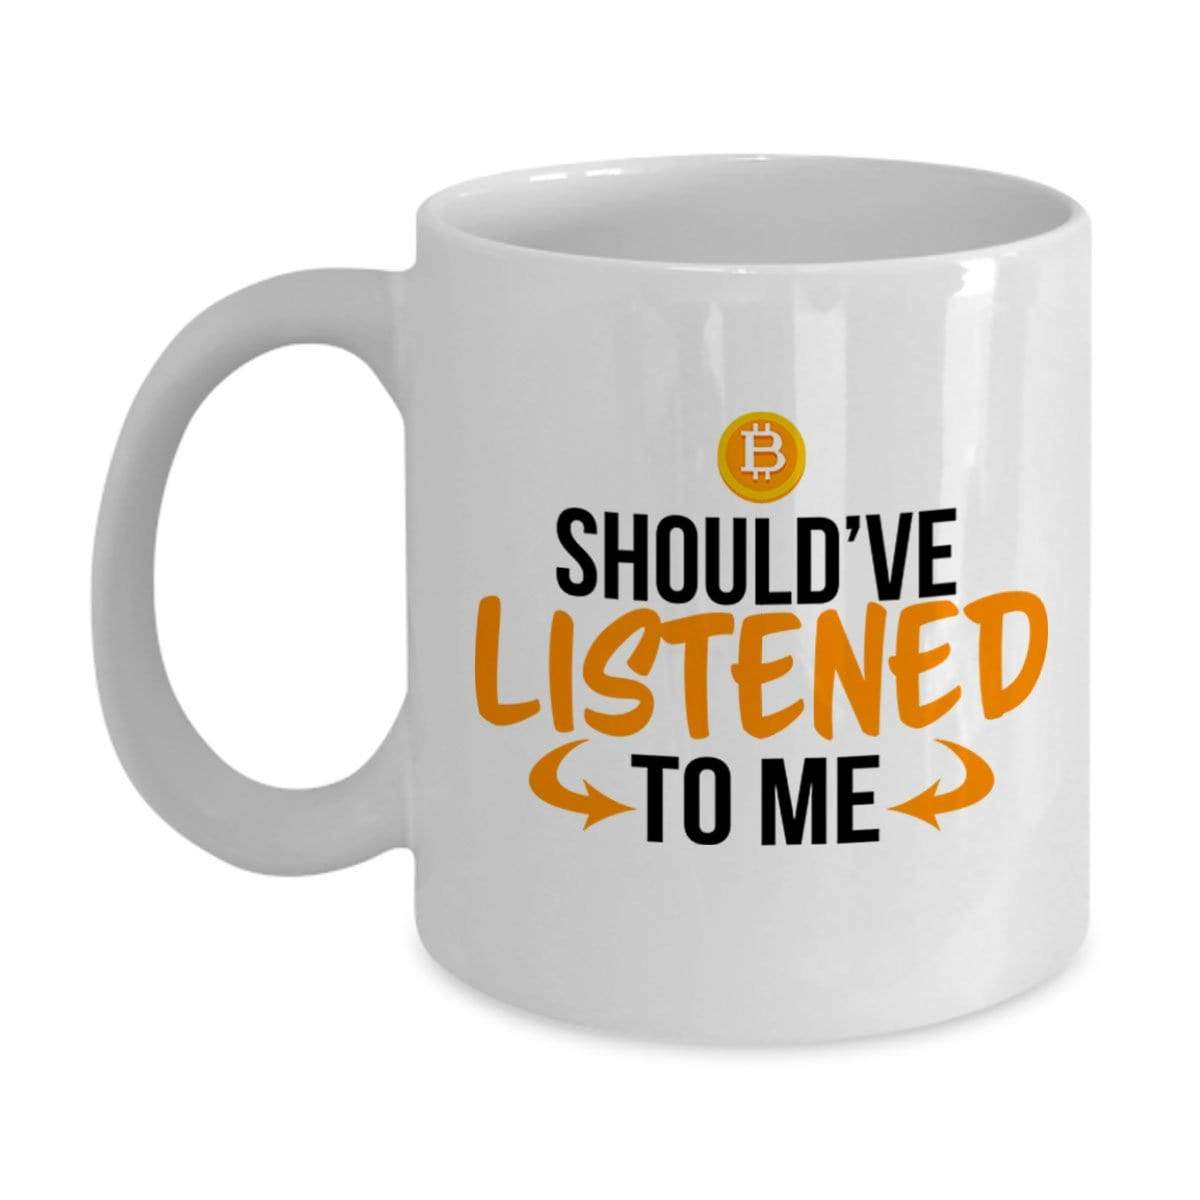 SunFrog-Busted MUG 11oz Mug / White Should've Listened To Me Mug